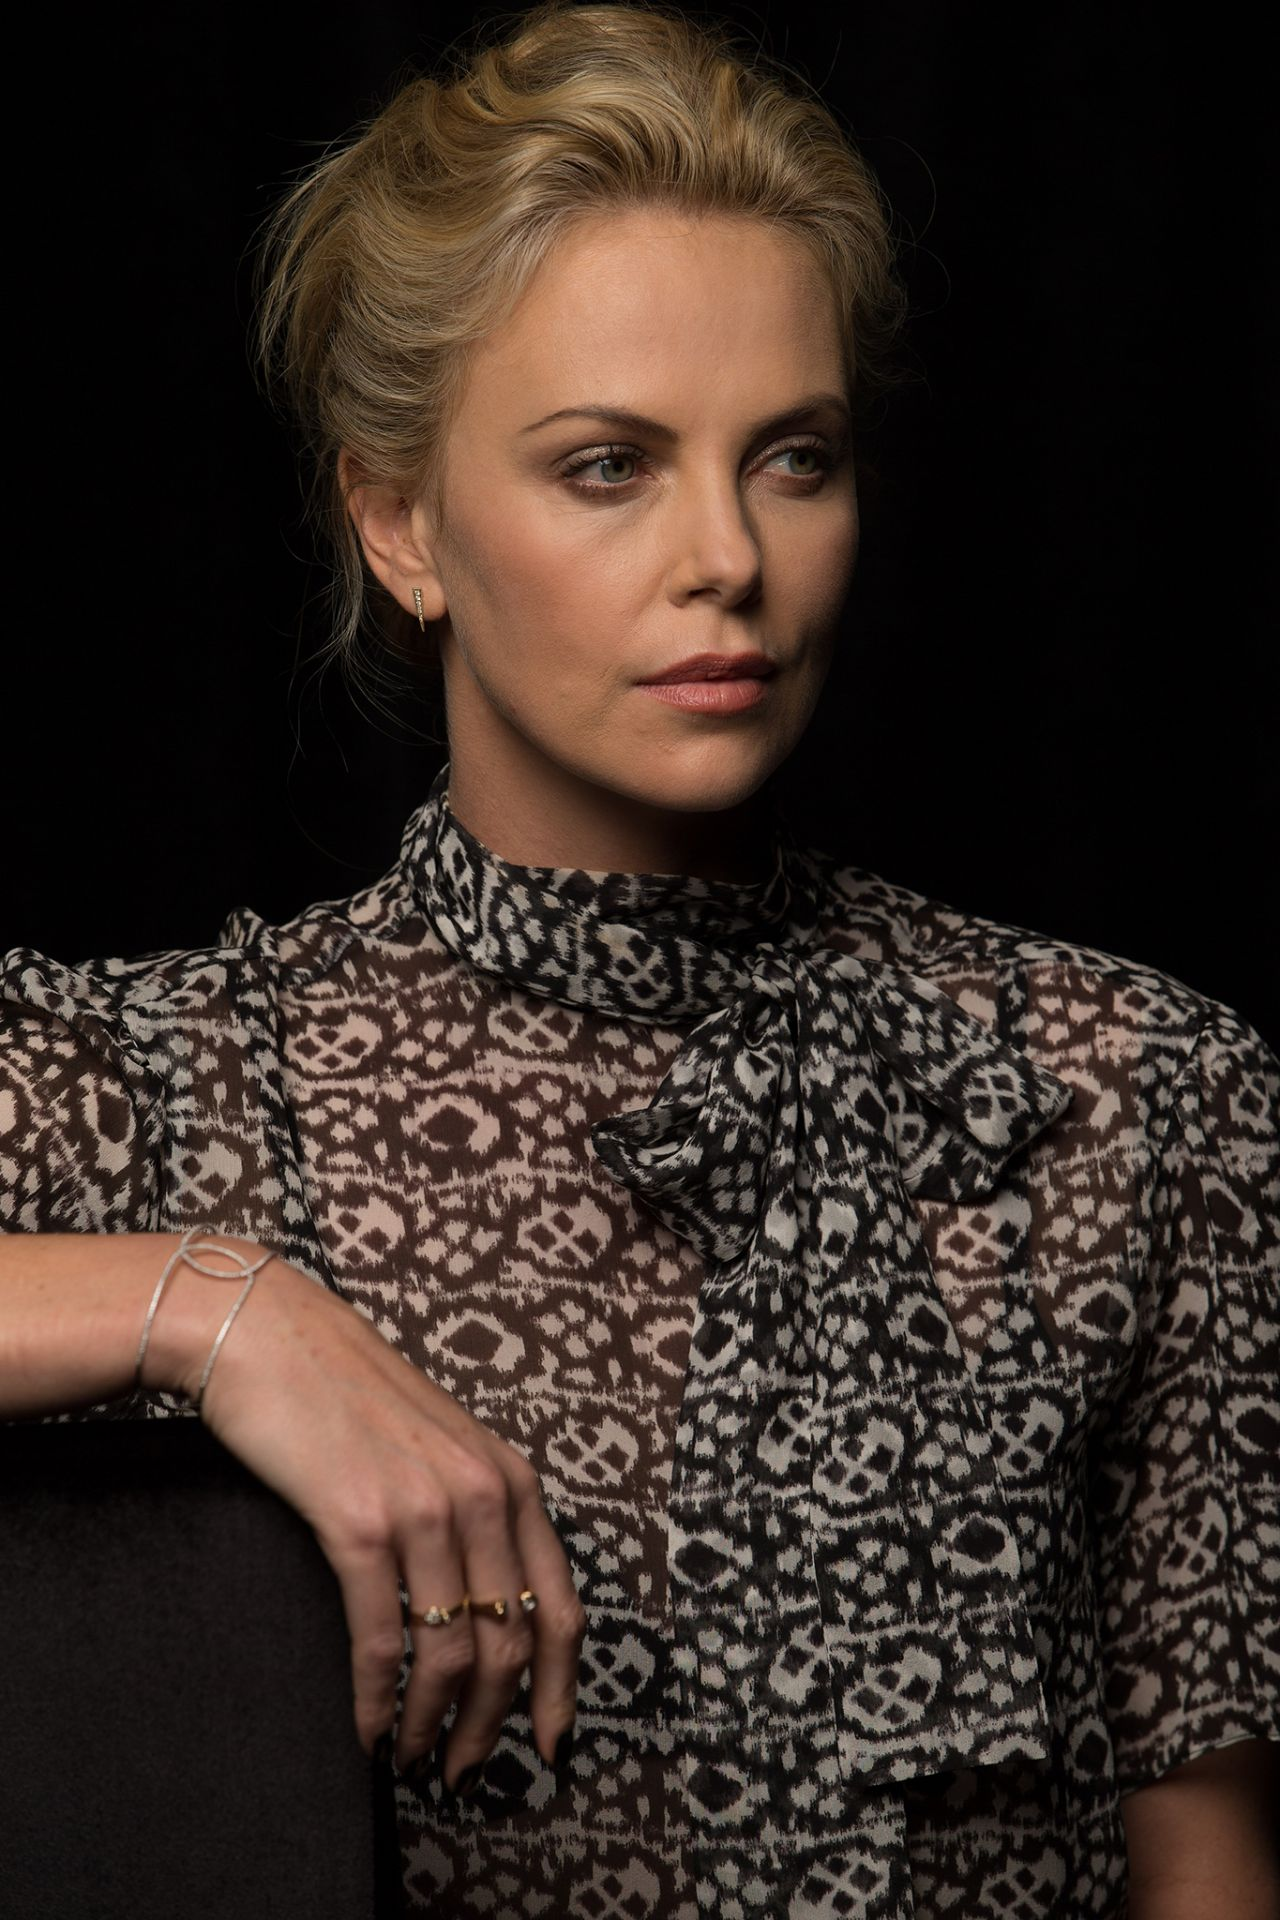 Charlize Theron Photoshoot For Usa Today 2015